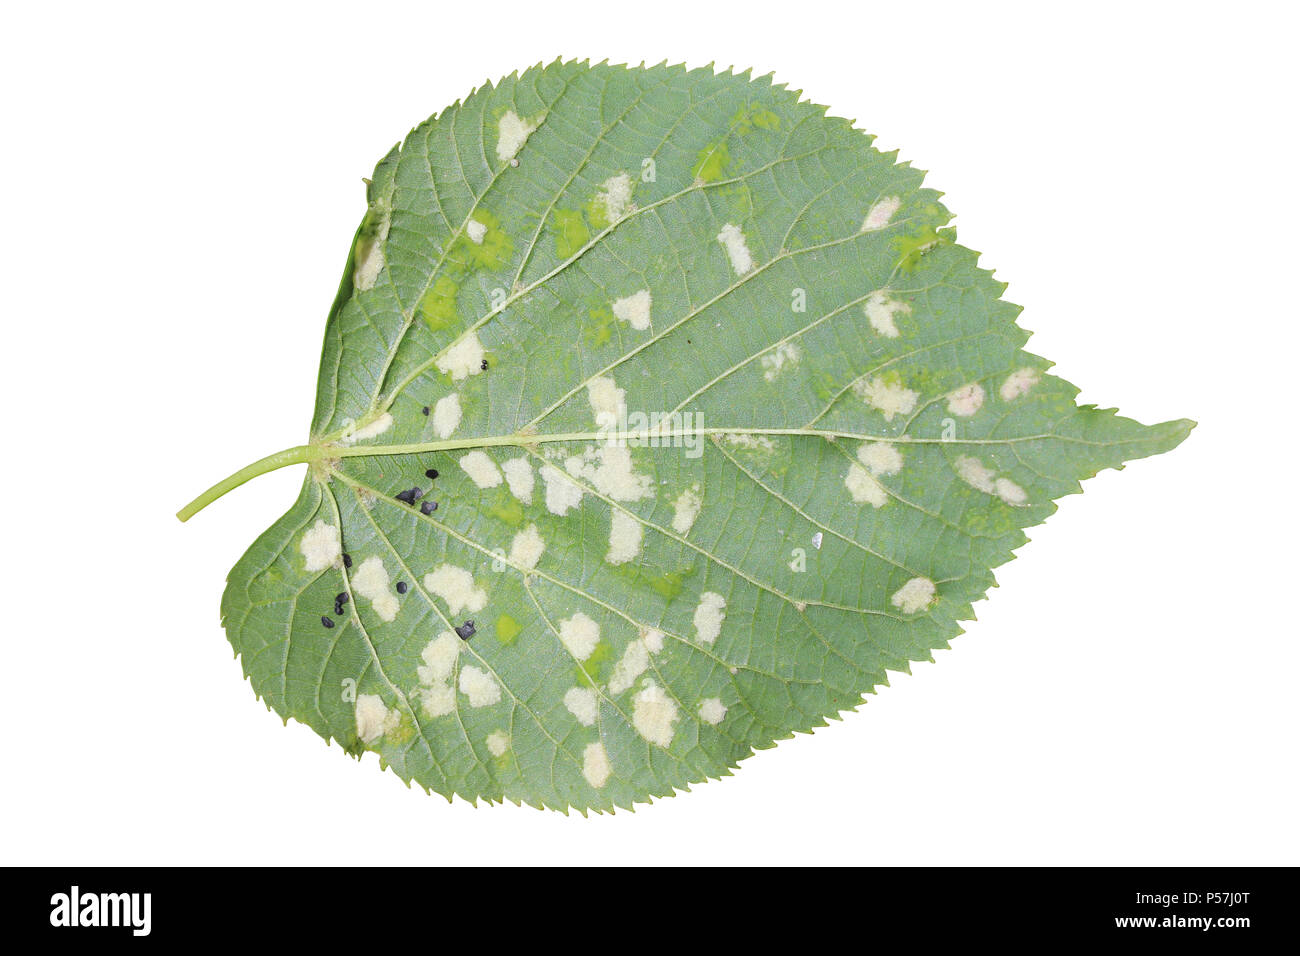 Damage to Tilia europaea leaf caused by the Lime felt gall mite Eriophyes leiosoma - Stock Image